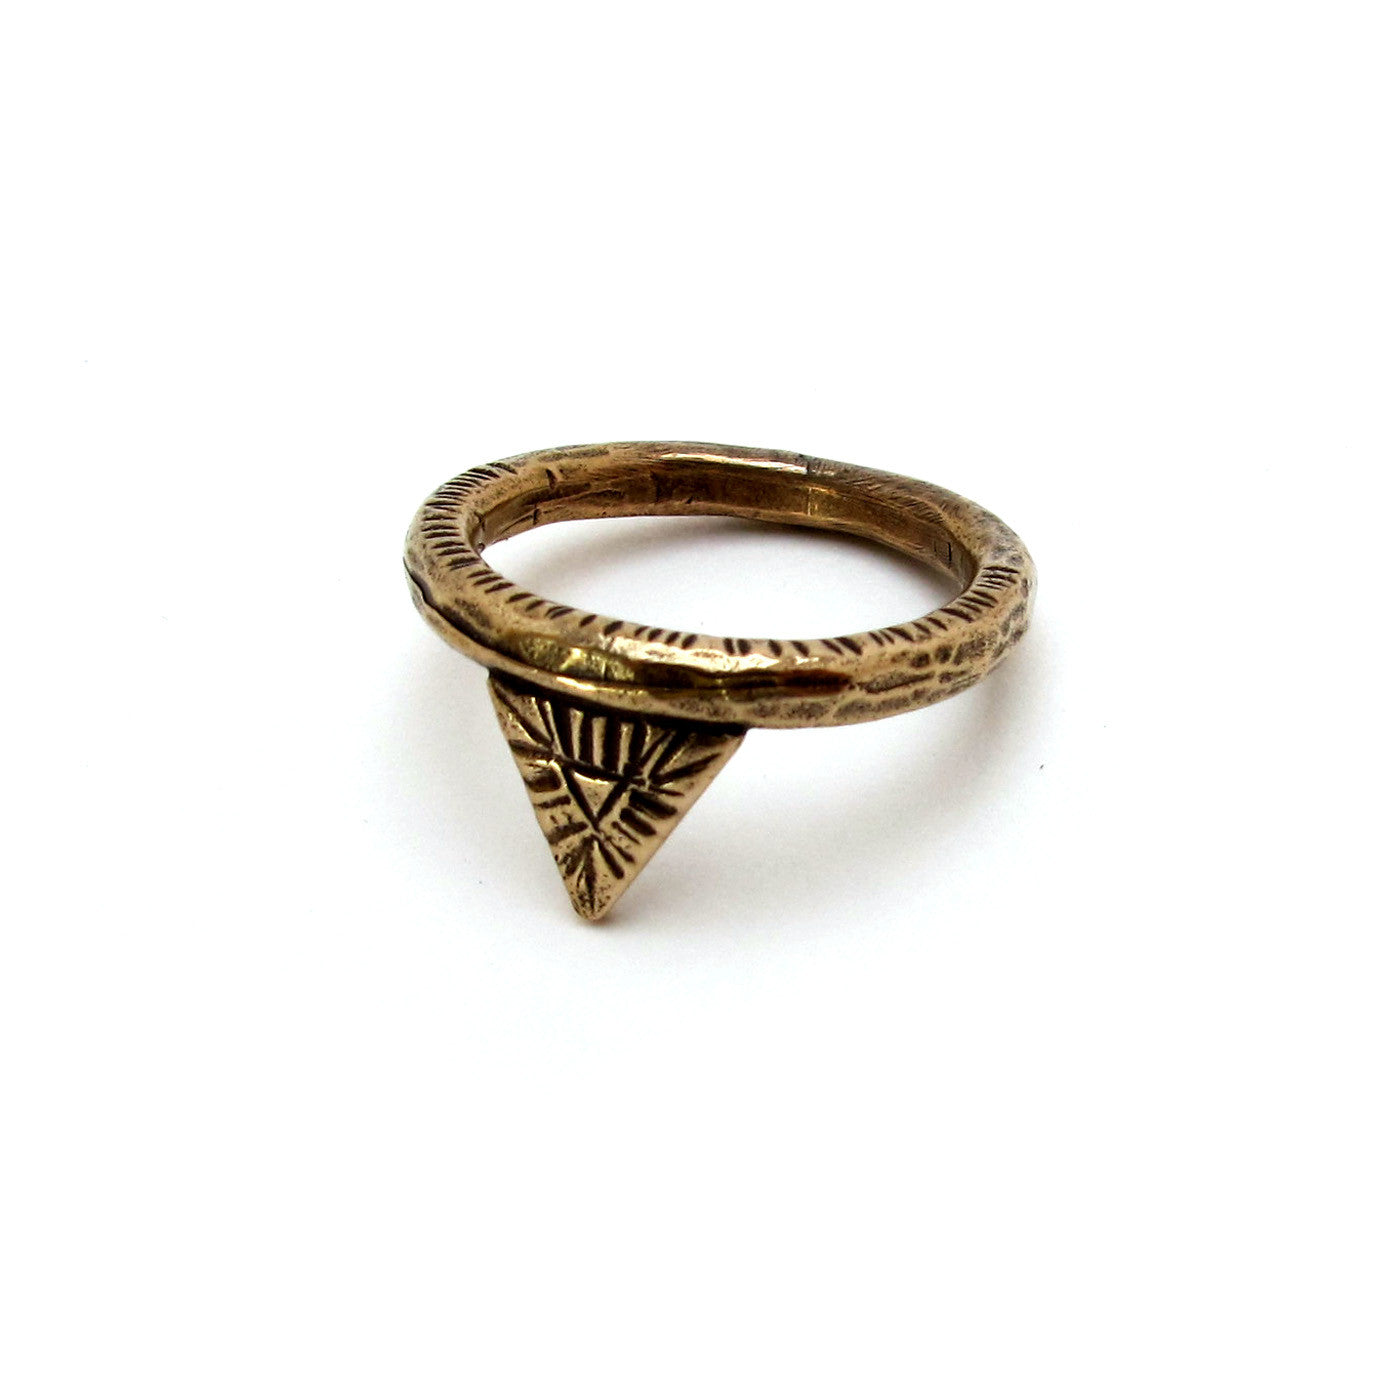 Relic ring